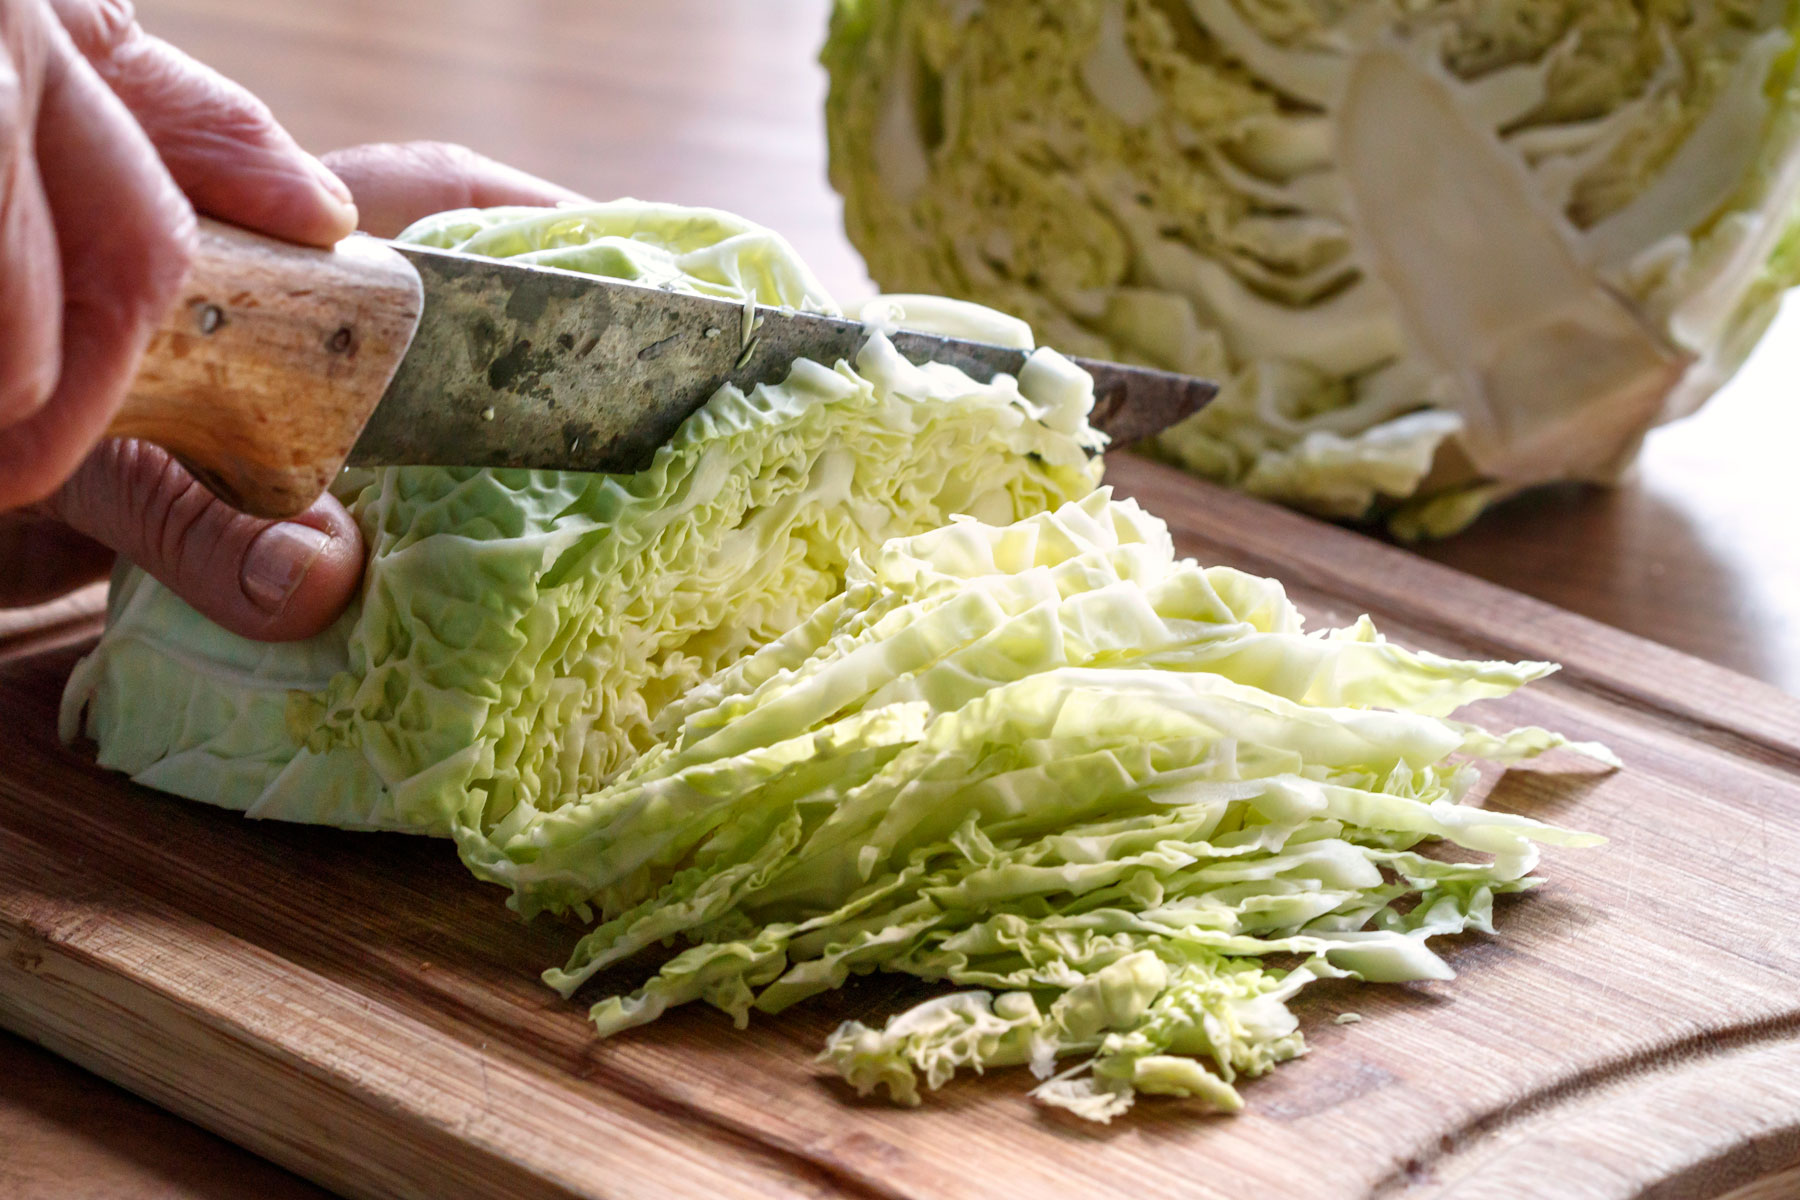 A person thinly chopping a halved cabbage on a wooden cutting board.